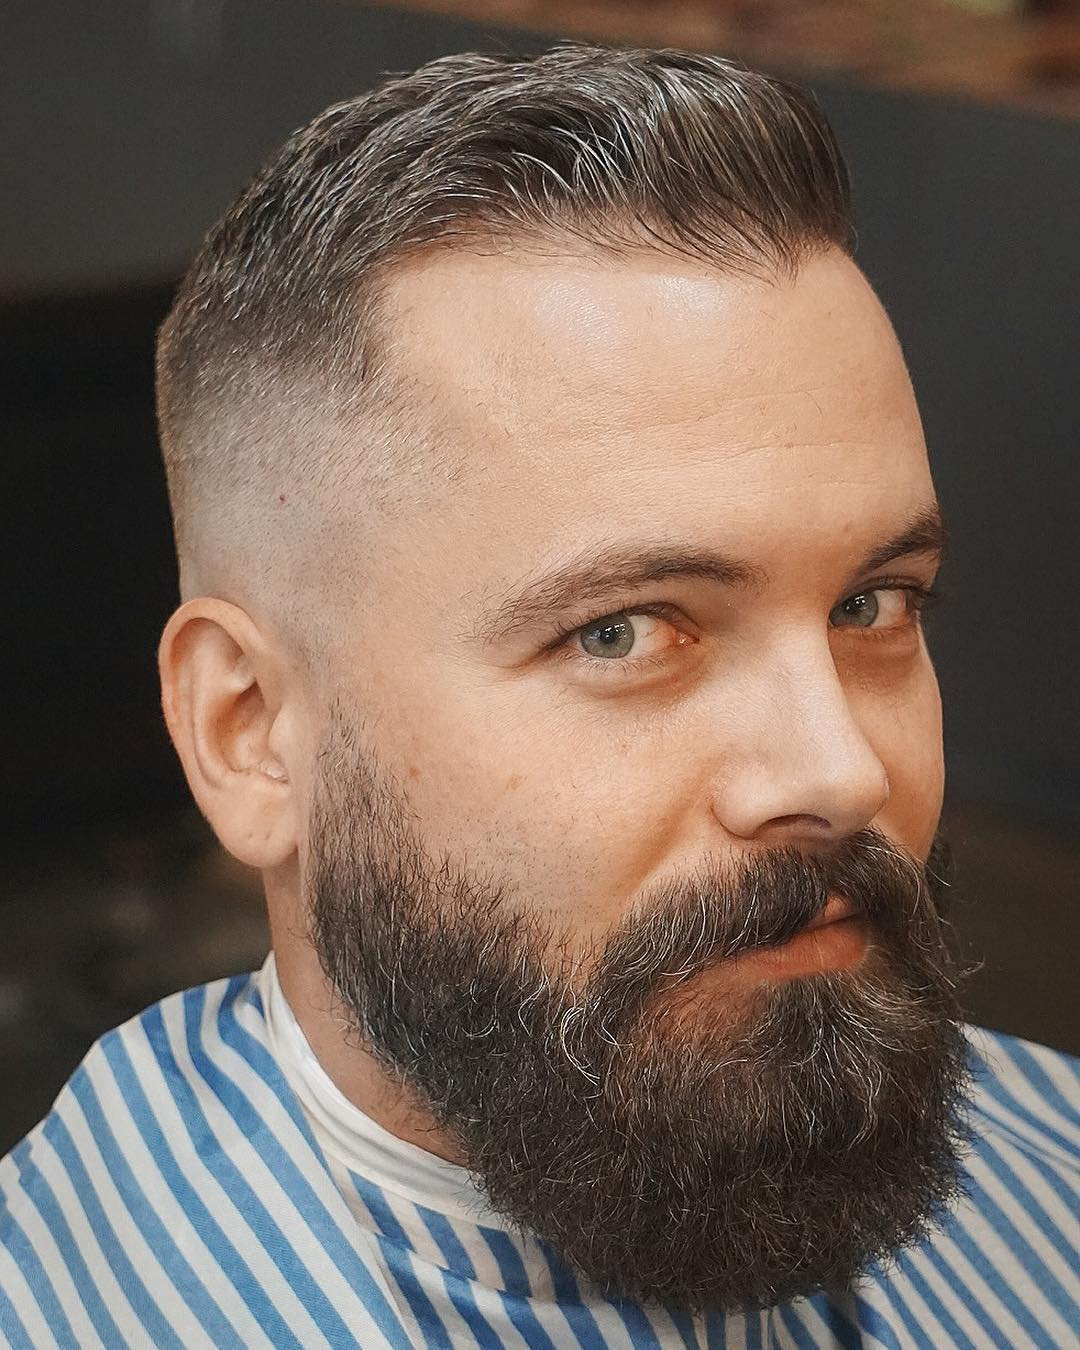 Thinning Hair with Skin Fade and Beard